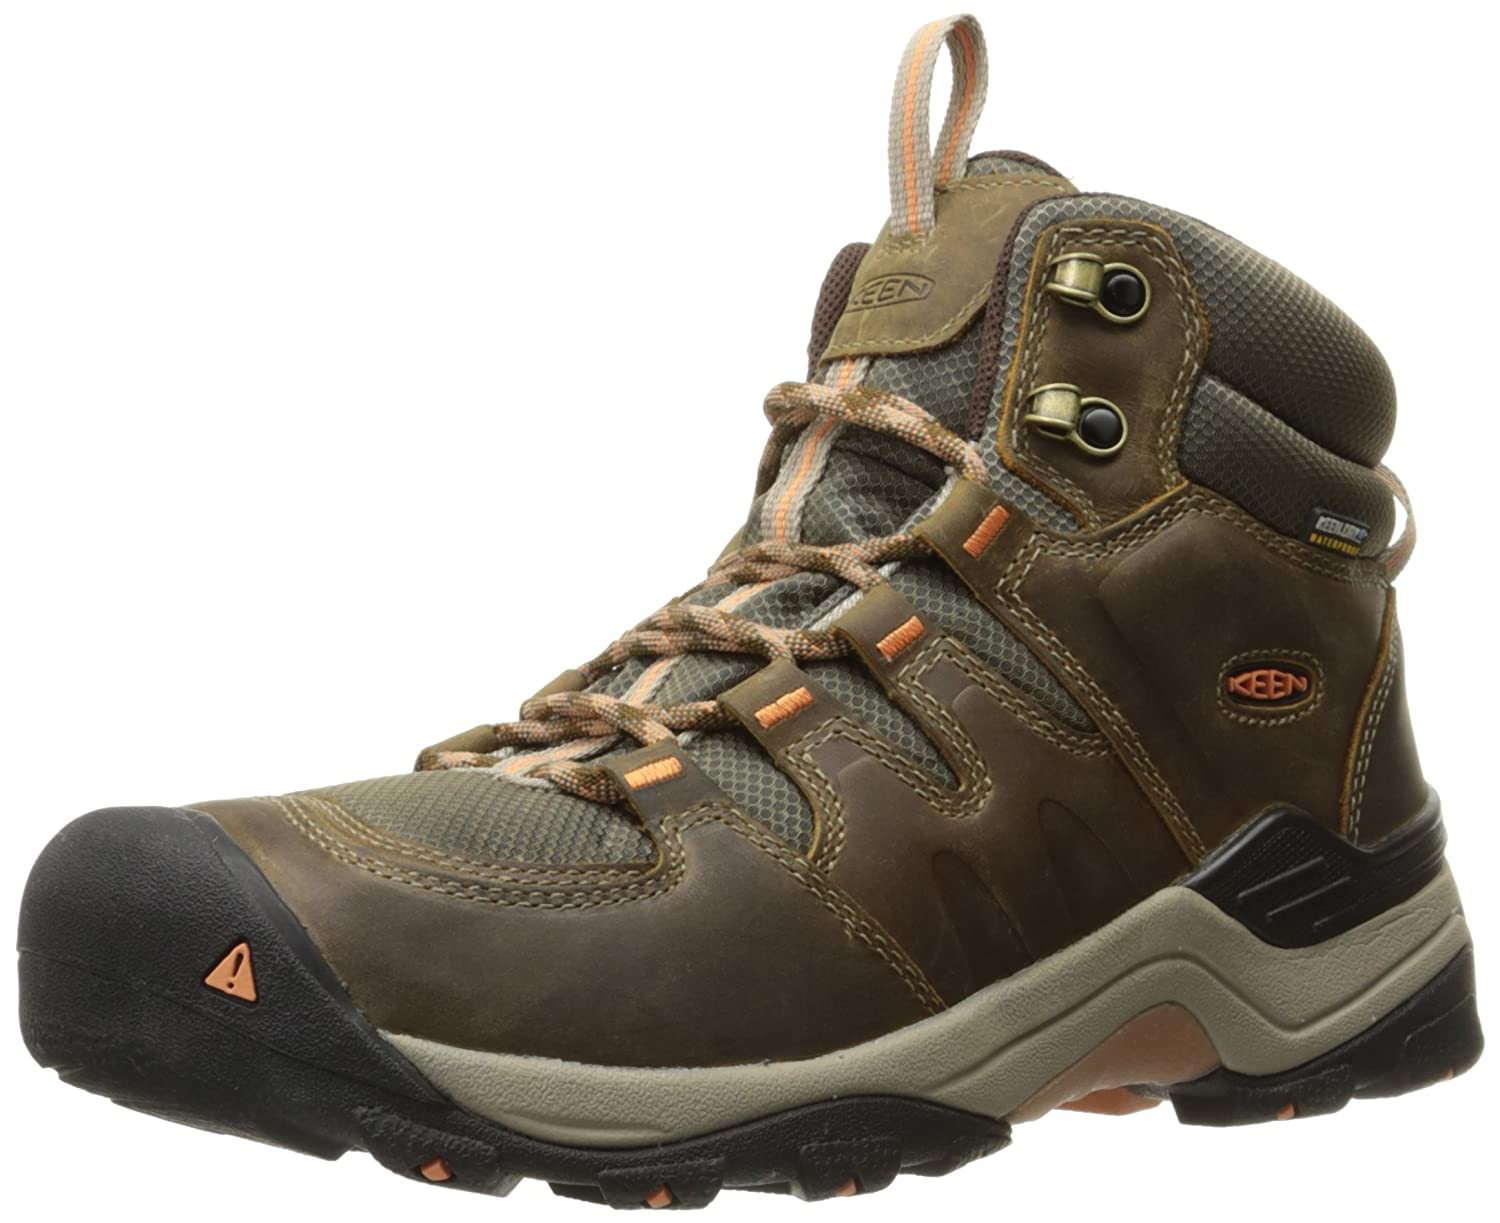 KEEN Women's Gypsum II Mid WP Boot